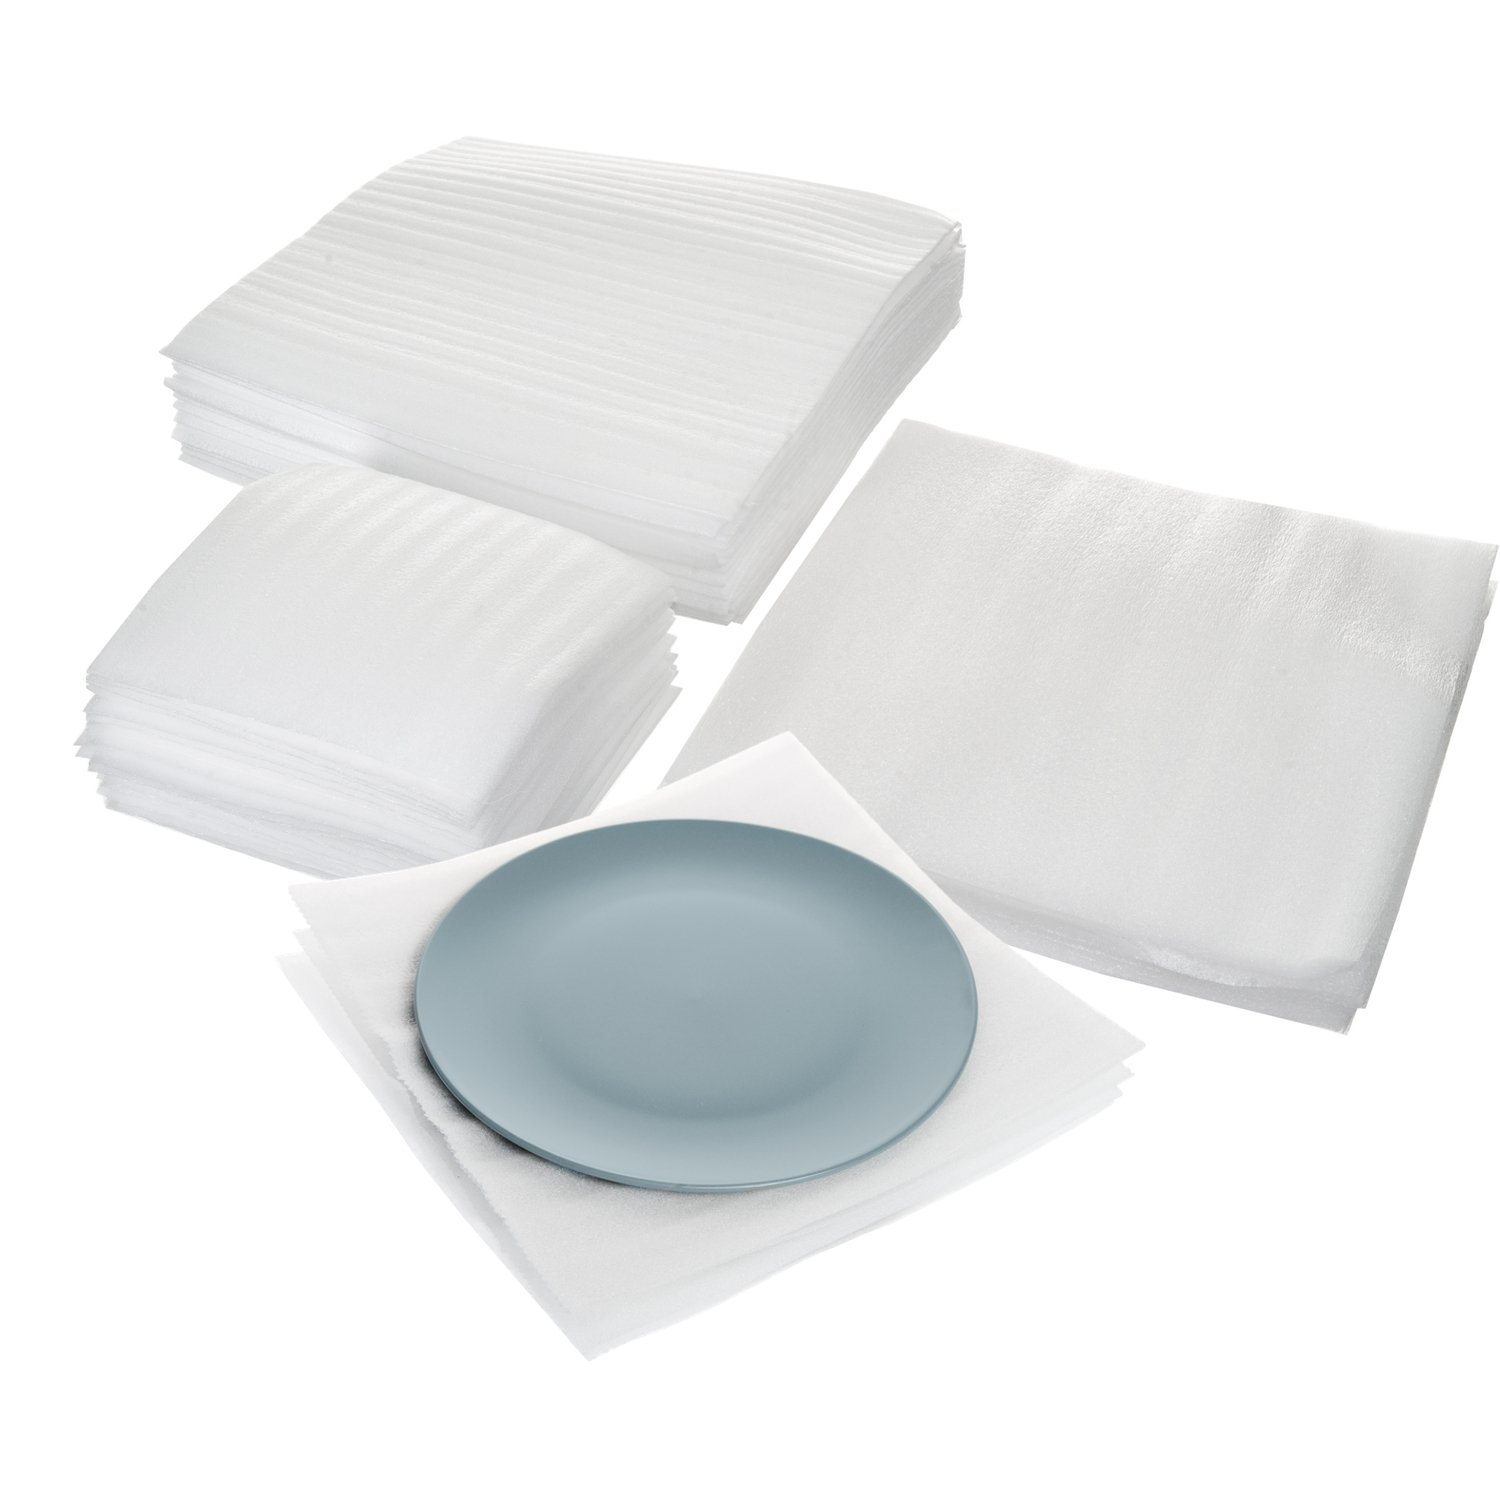 Cushion Foam Sheet and Pouch Variety Bundle Pack (60 Pack), Packing Supplies for Moving, Wrapping Dishes, Glasses, Furniture Legs, By California Basics